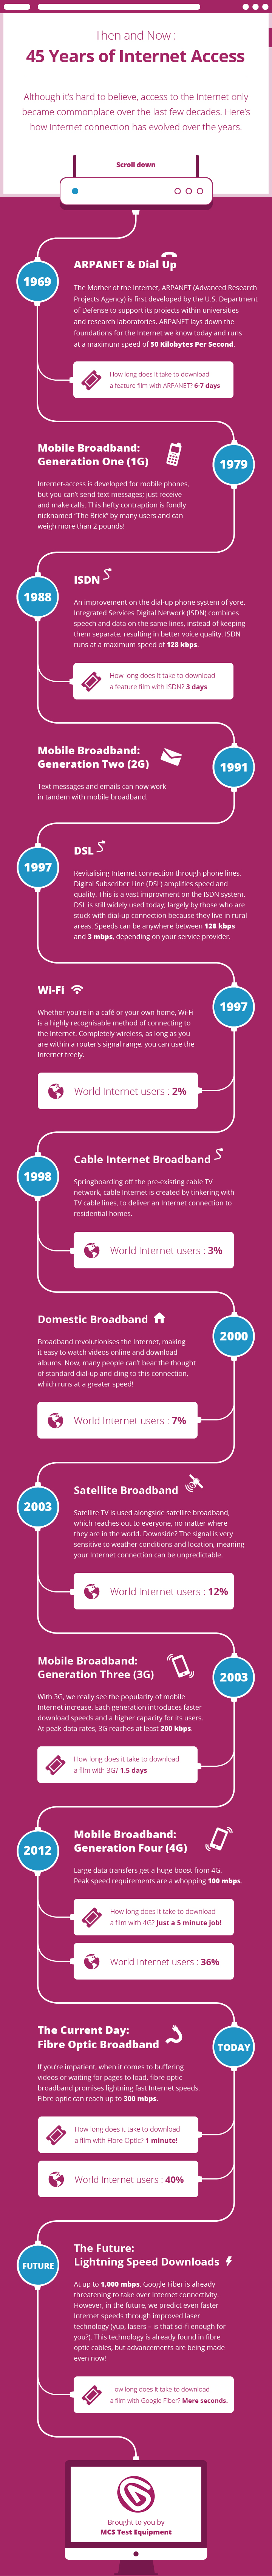 Then and Now - 45 Years of Internet Access